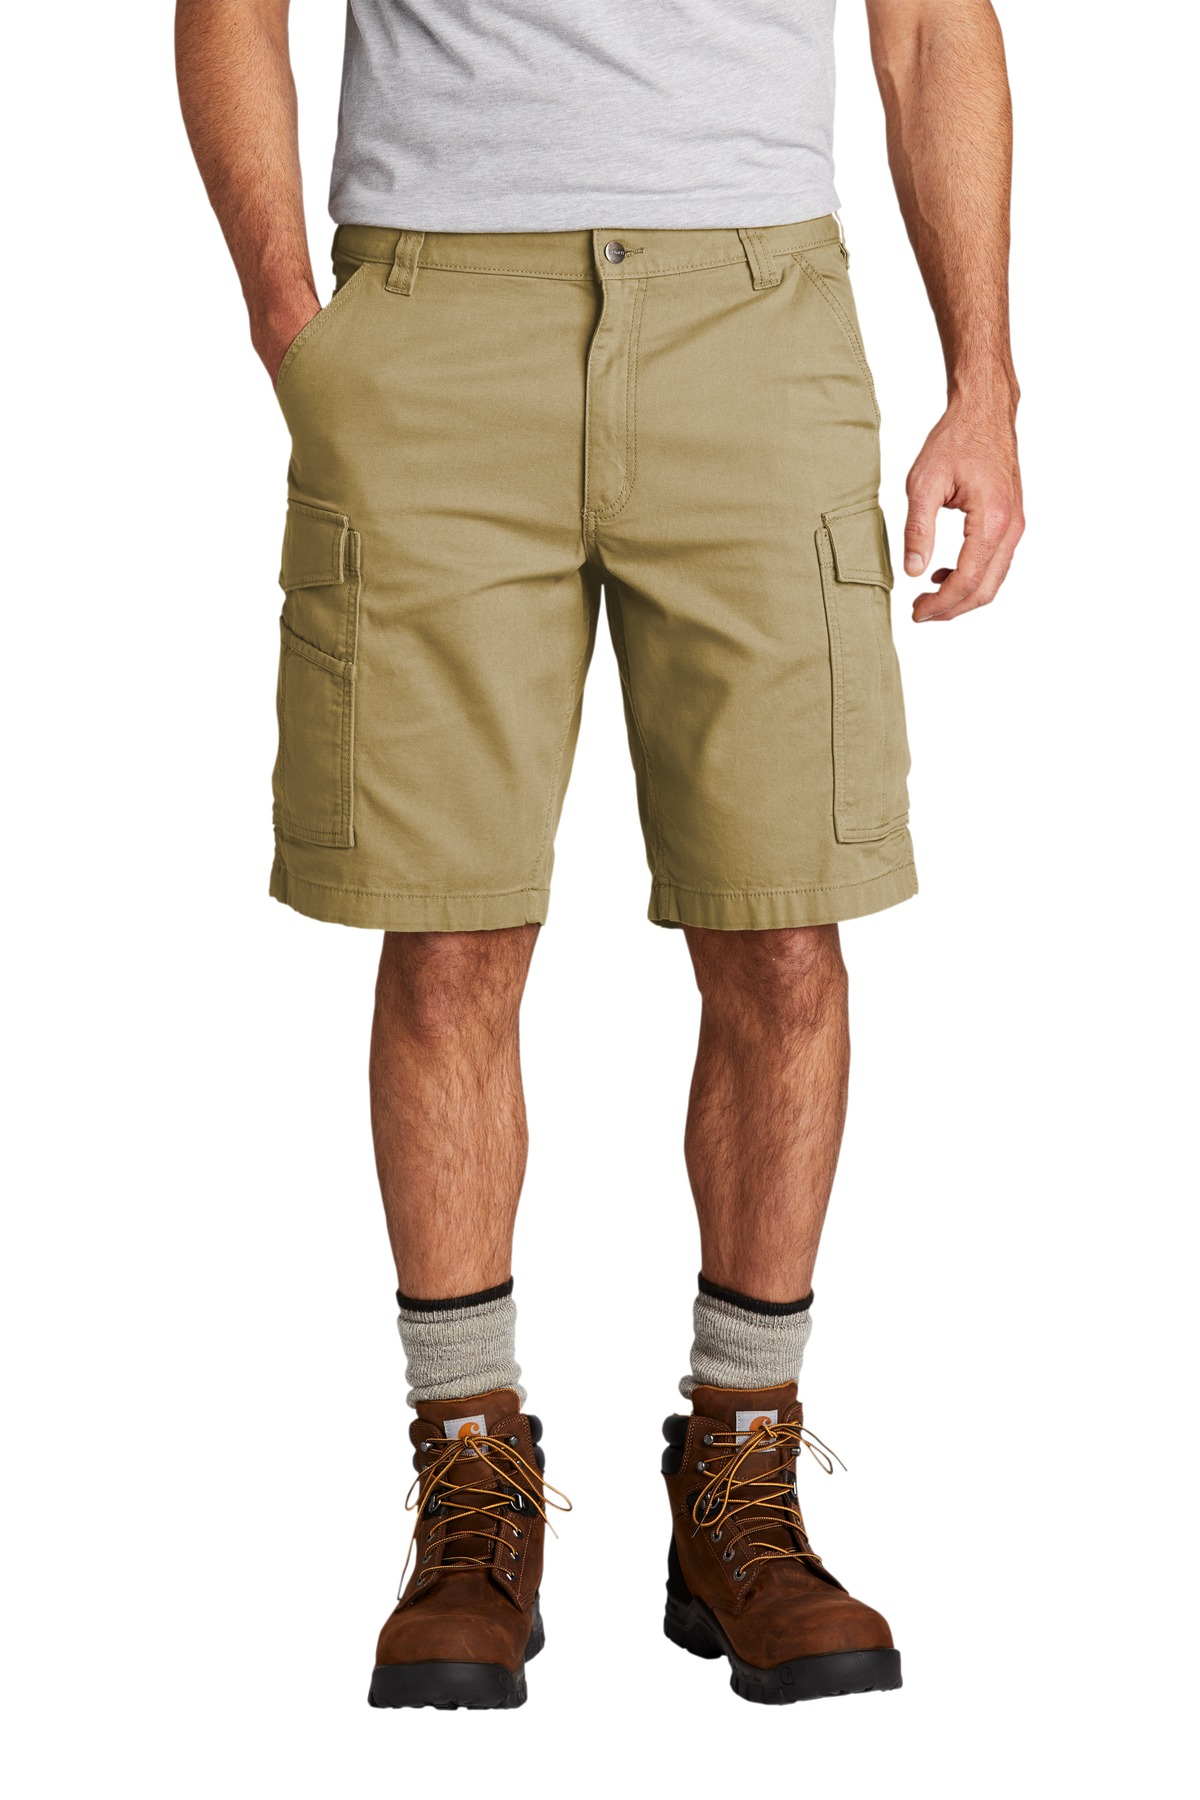 Carhartt ®  Rugged Flex ®  Rigby Cargo Short CT103542 - Dark Khaki